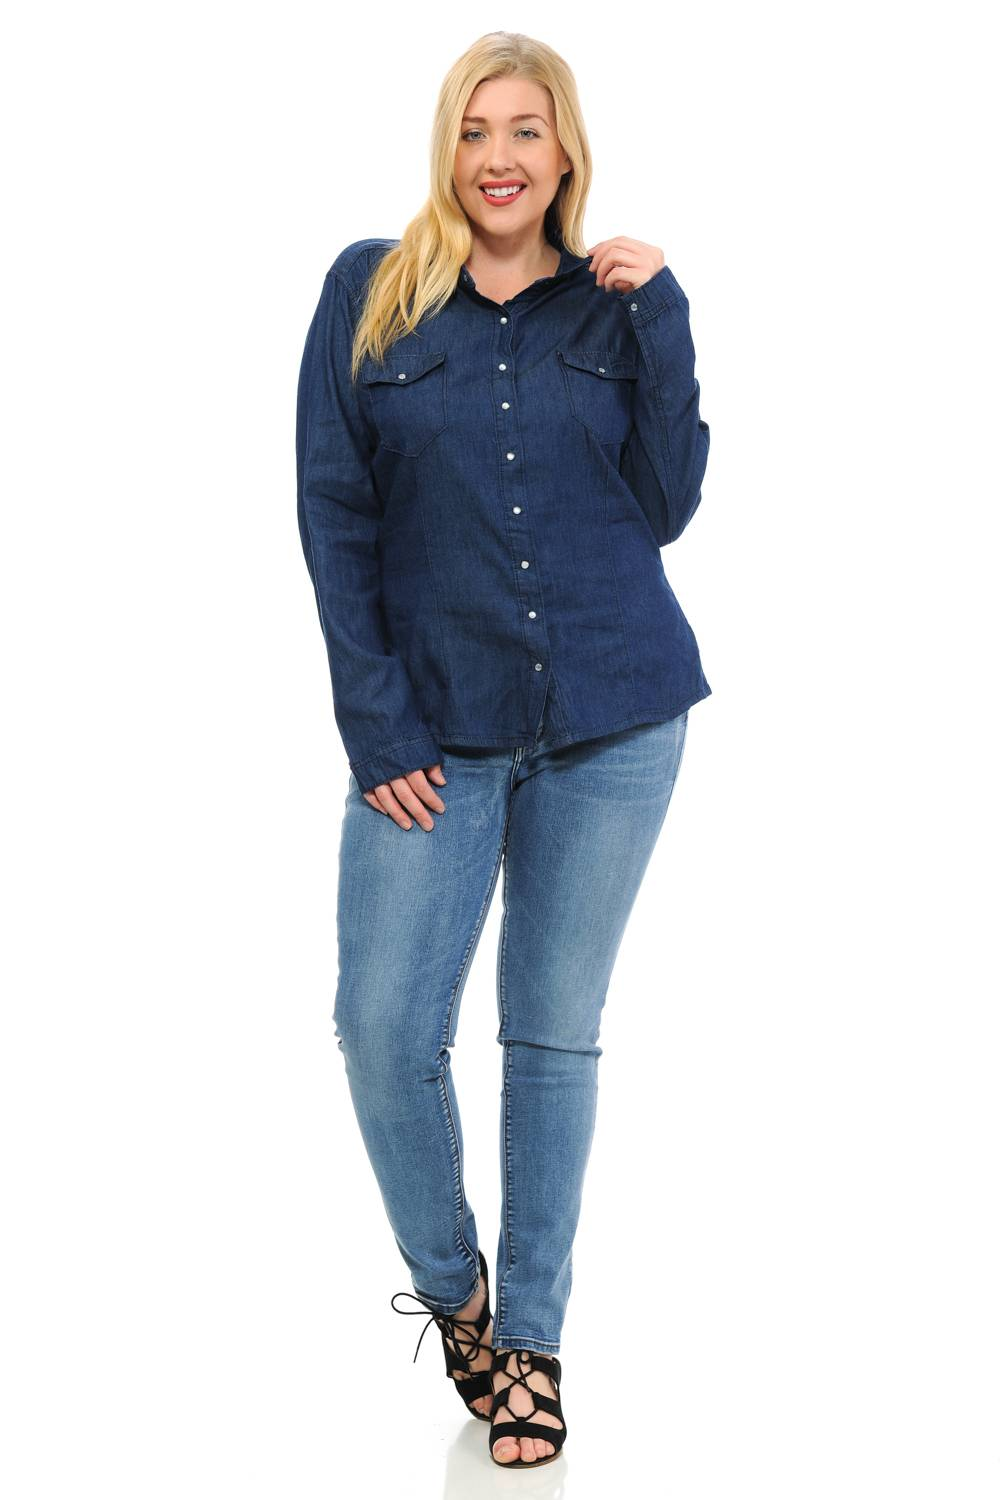 5c473a142a23da Sweet Look Women s Denim Blouse · Plus Size · Long Sleeve · V-neck ...